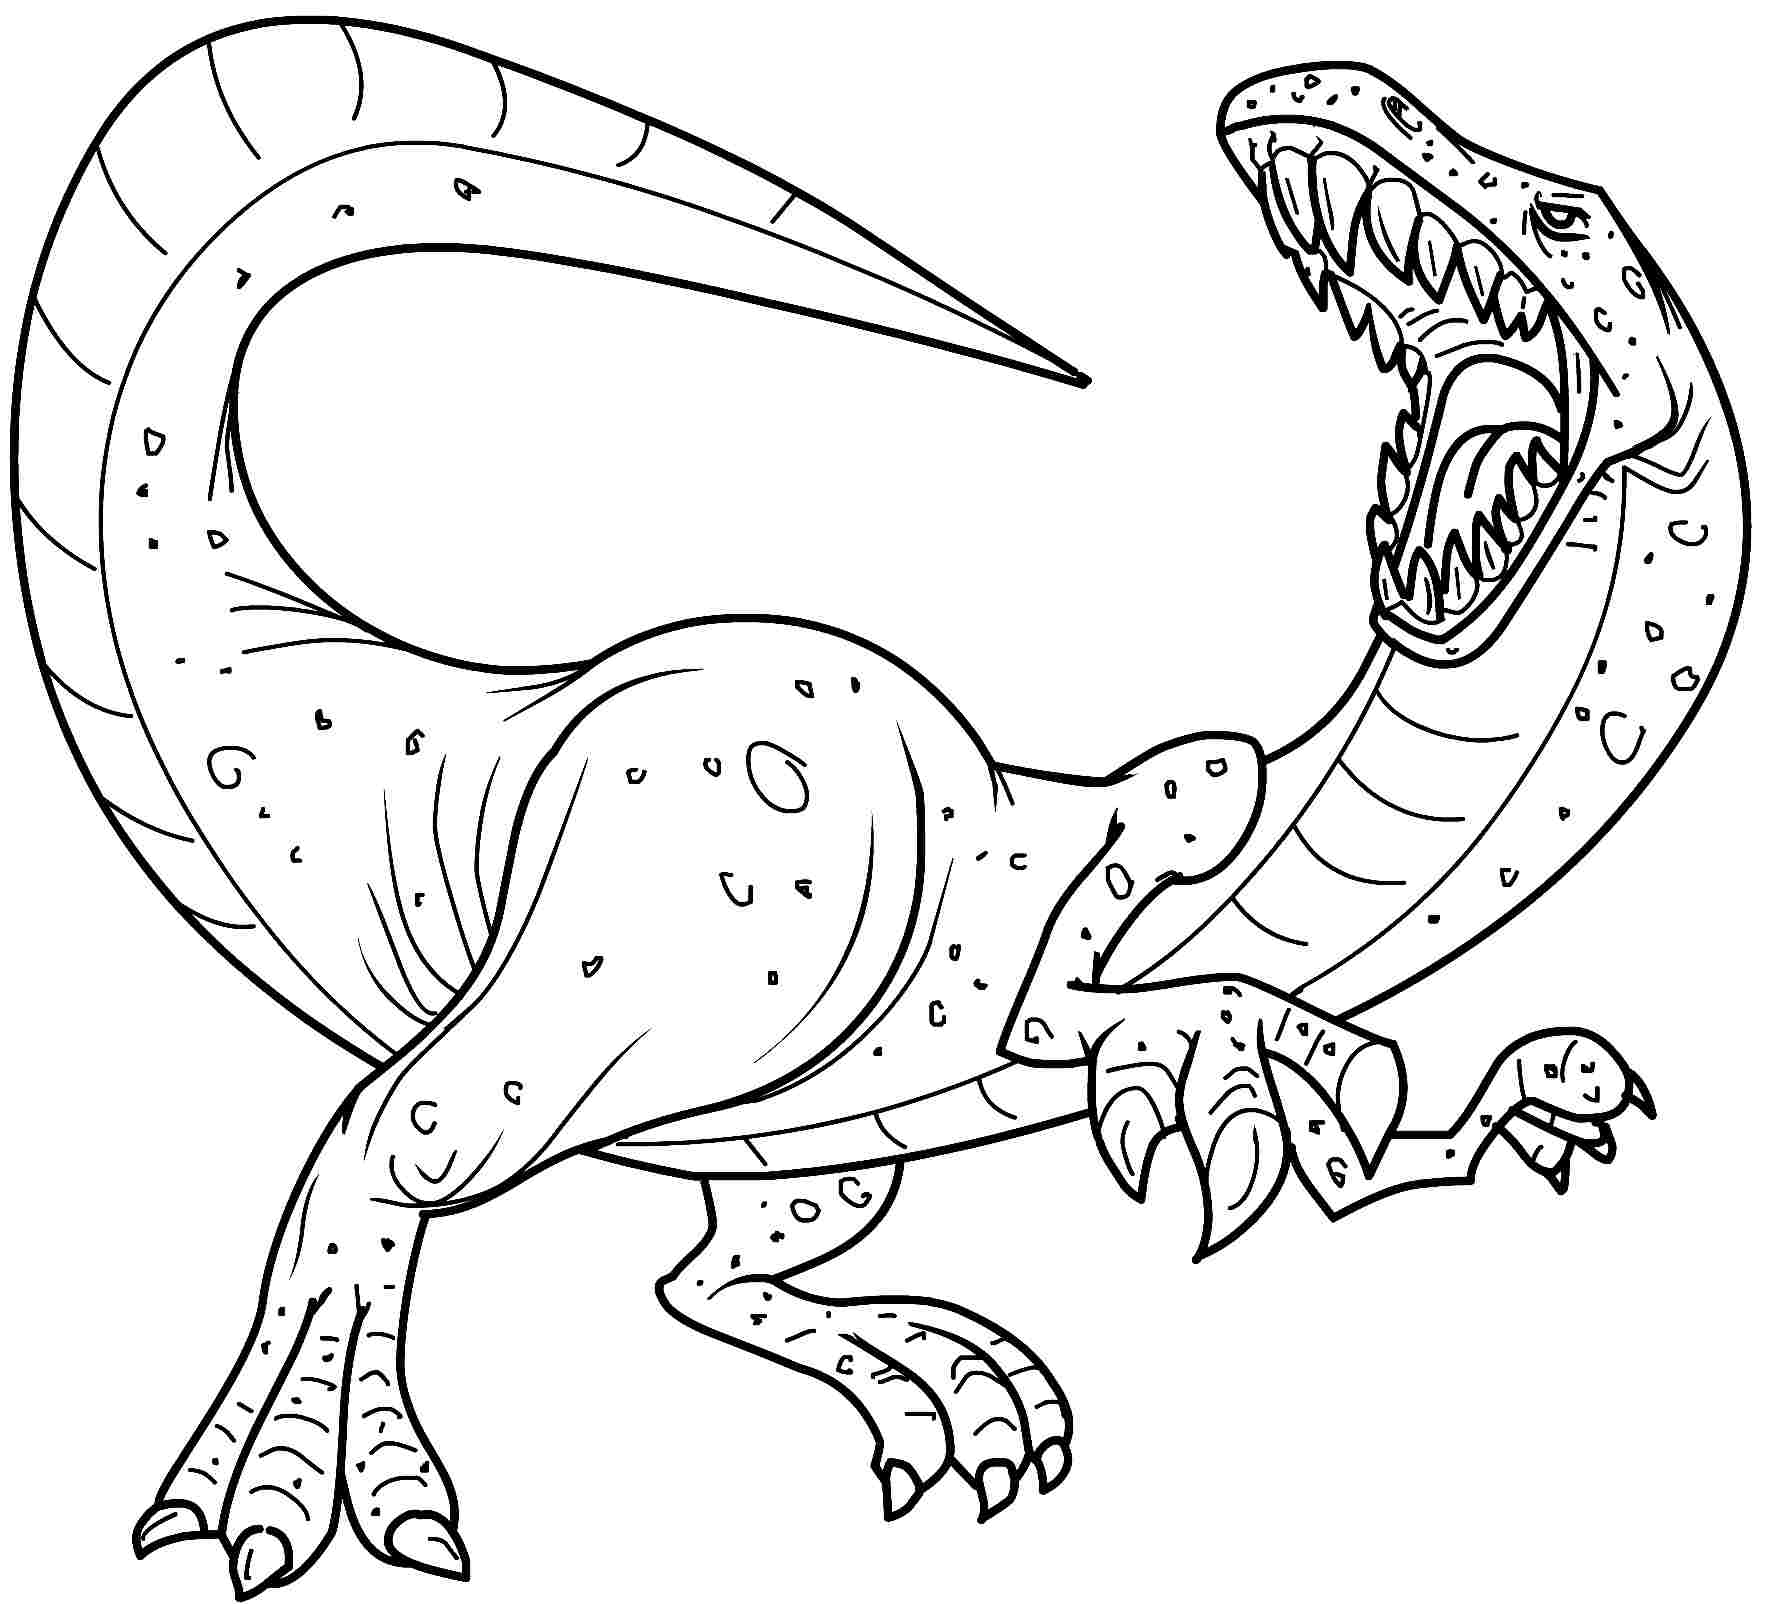 dinosaurs colouring pages dinosaur train coloring pages pages dinosaurs colouring